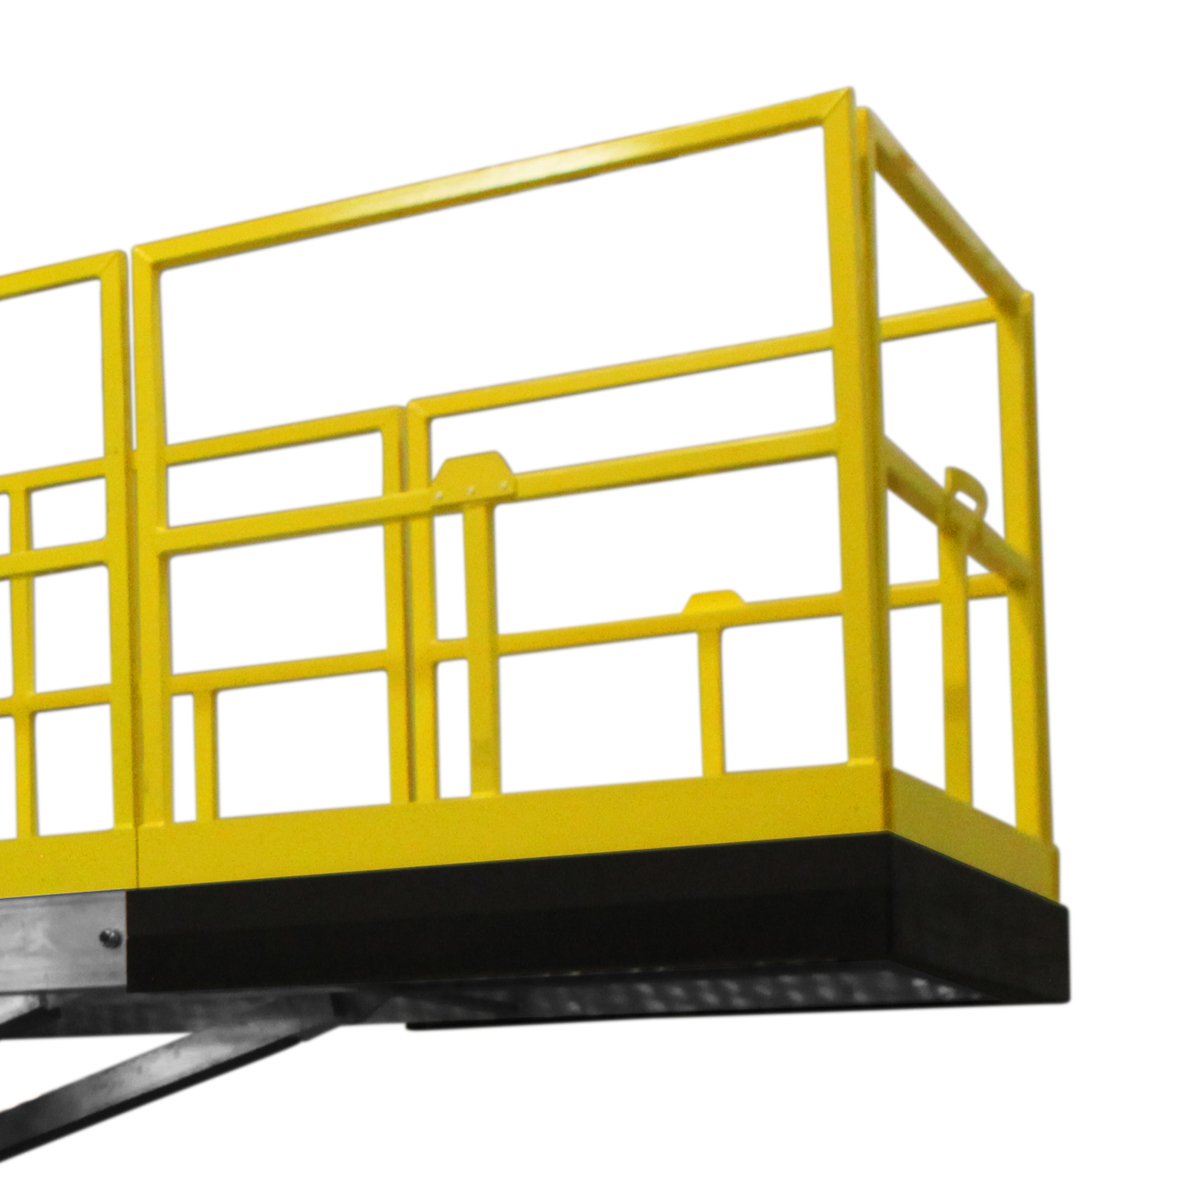 OSHA compliant, portable aluminum work platform with adjustable guardrails for 100% fall prevention.